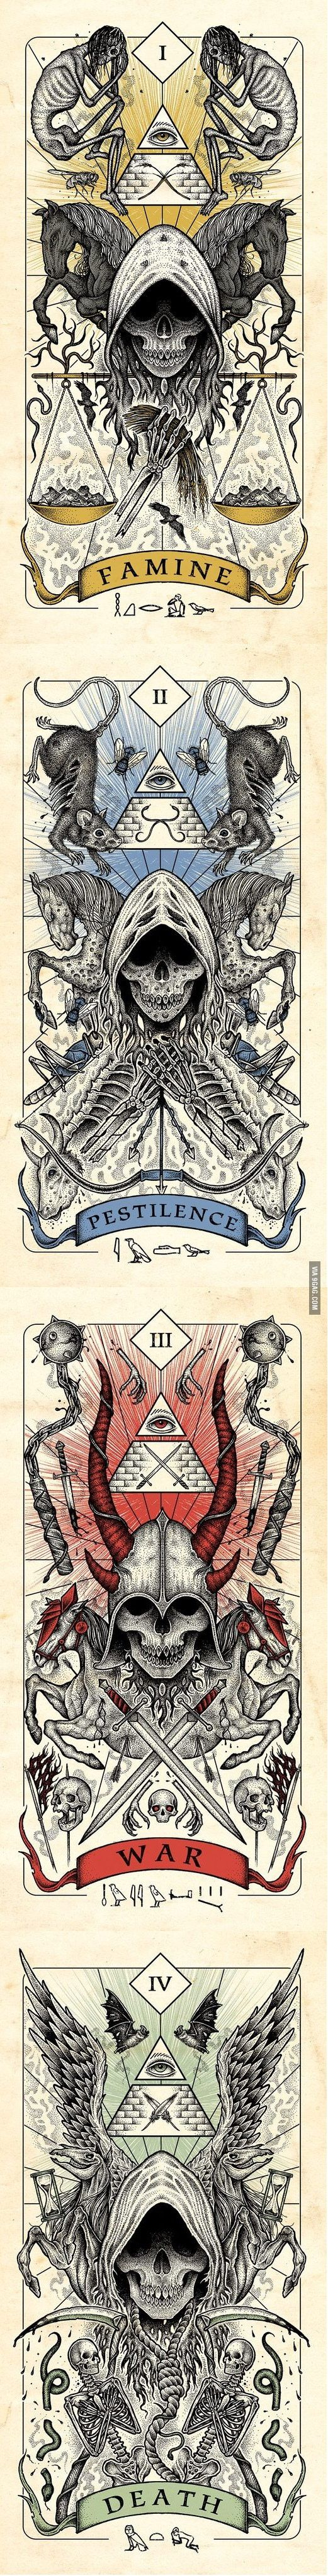 Four Horsemen of the Apocalypse... - 9GAG